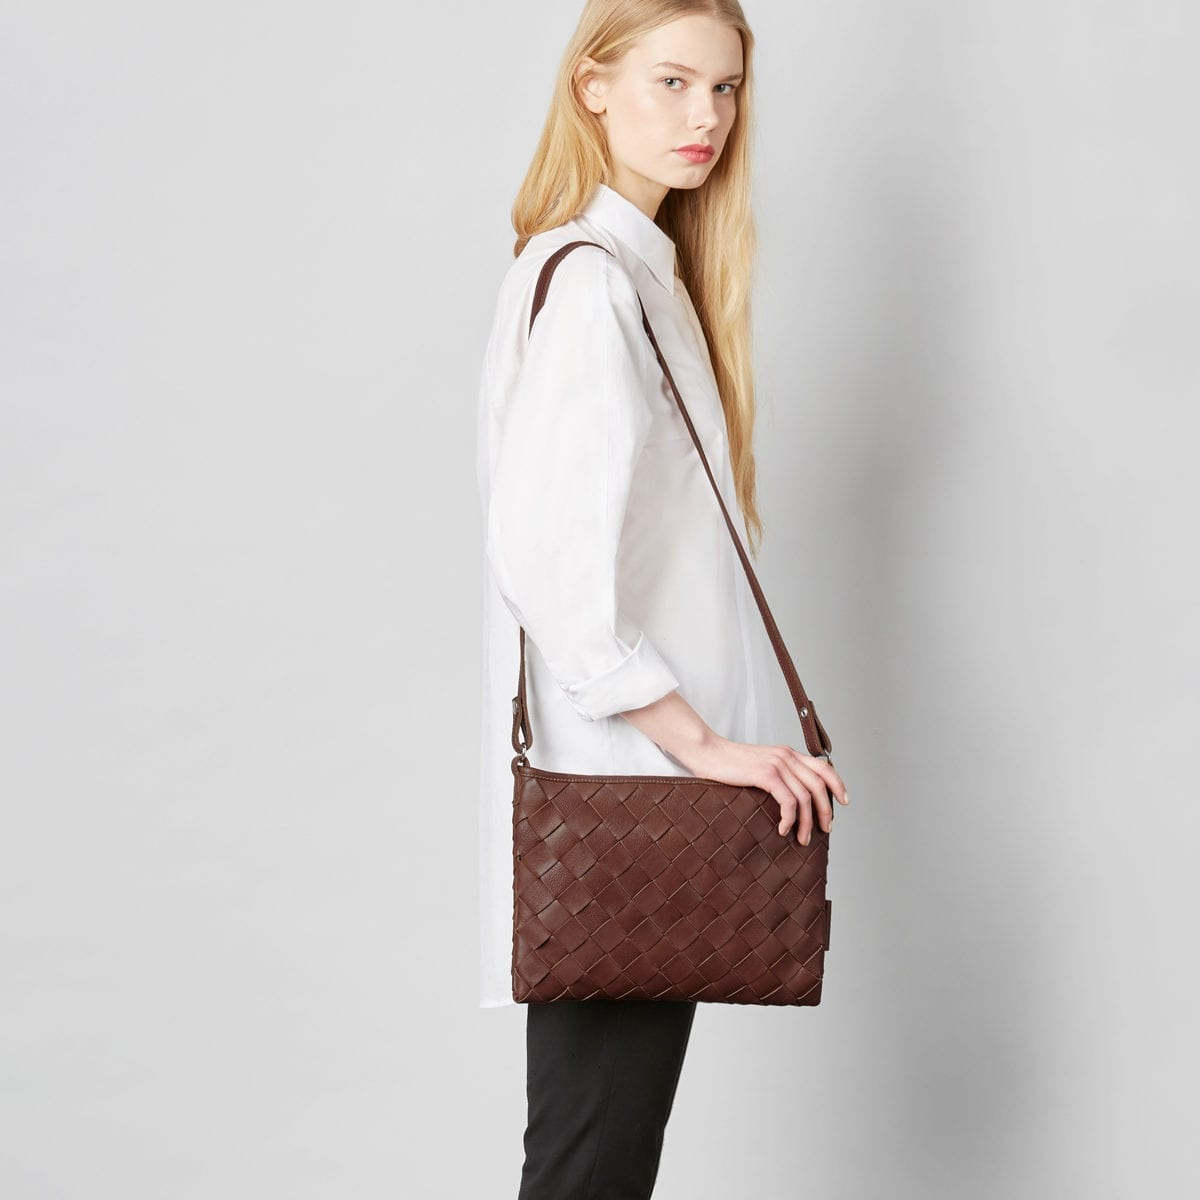 Trine Woven Clutch in brown